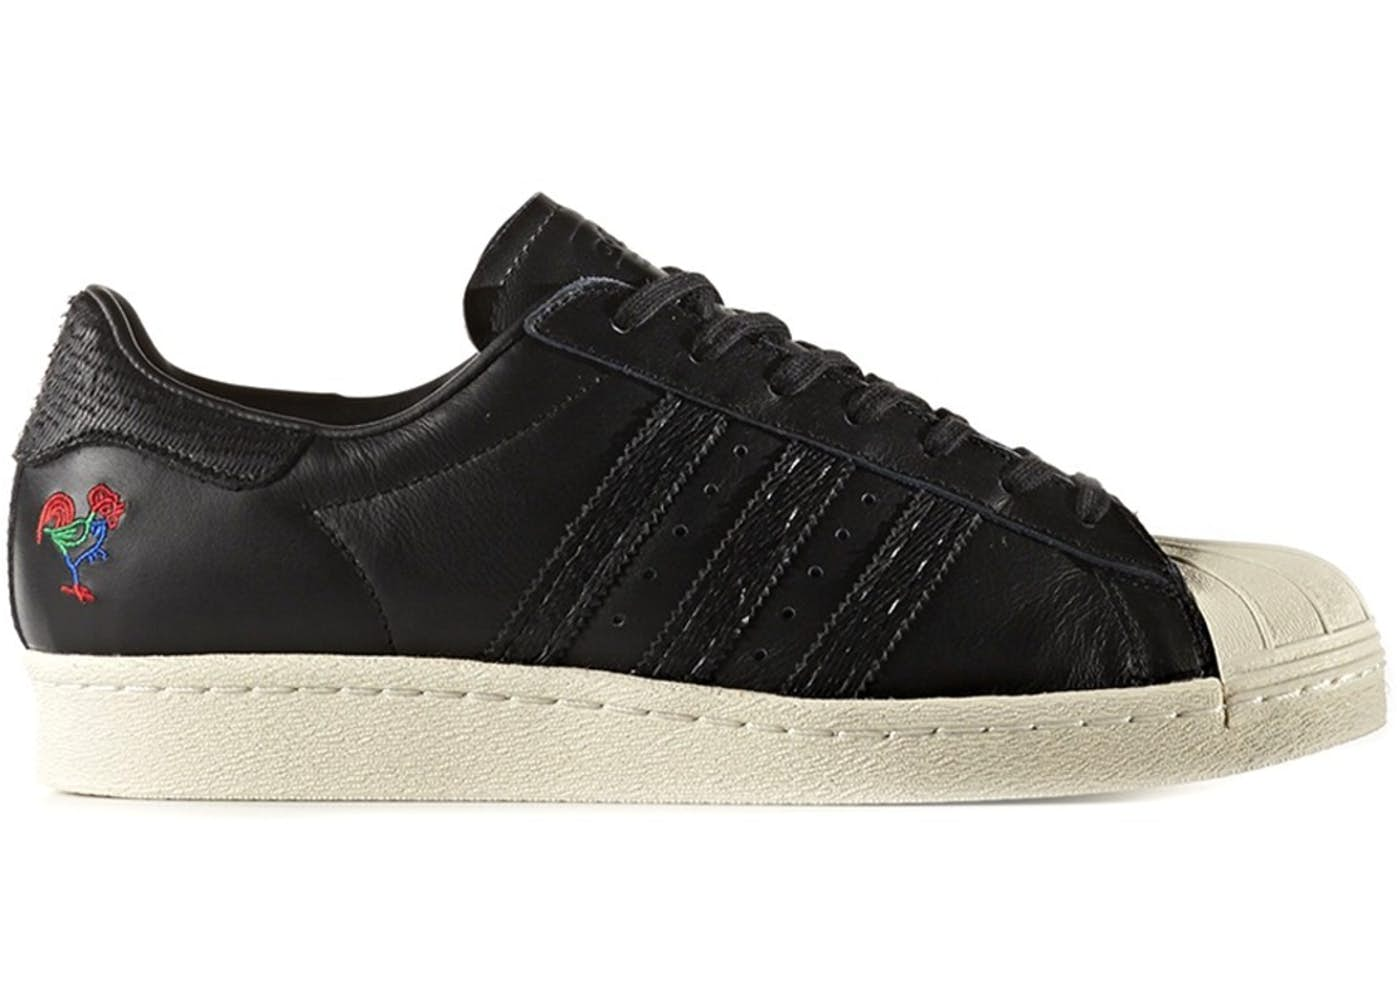 fa4c3814 Adidas Superstar 80s CNY (Core Black & Chalk White) End Clothing